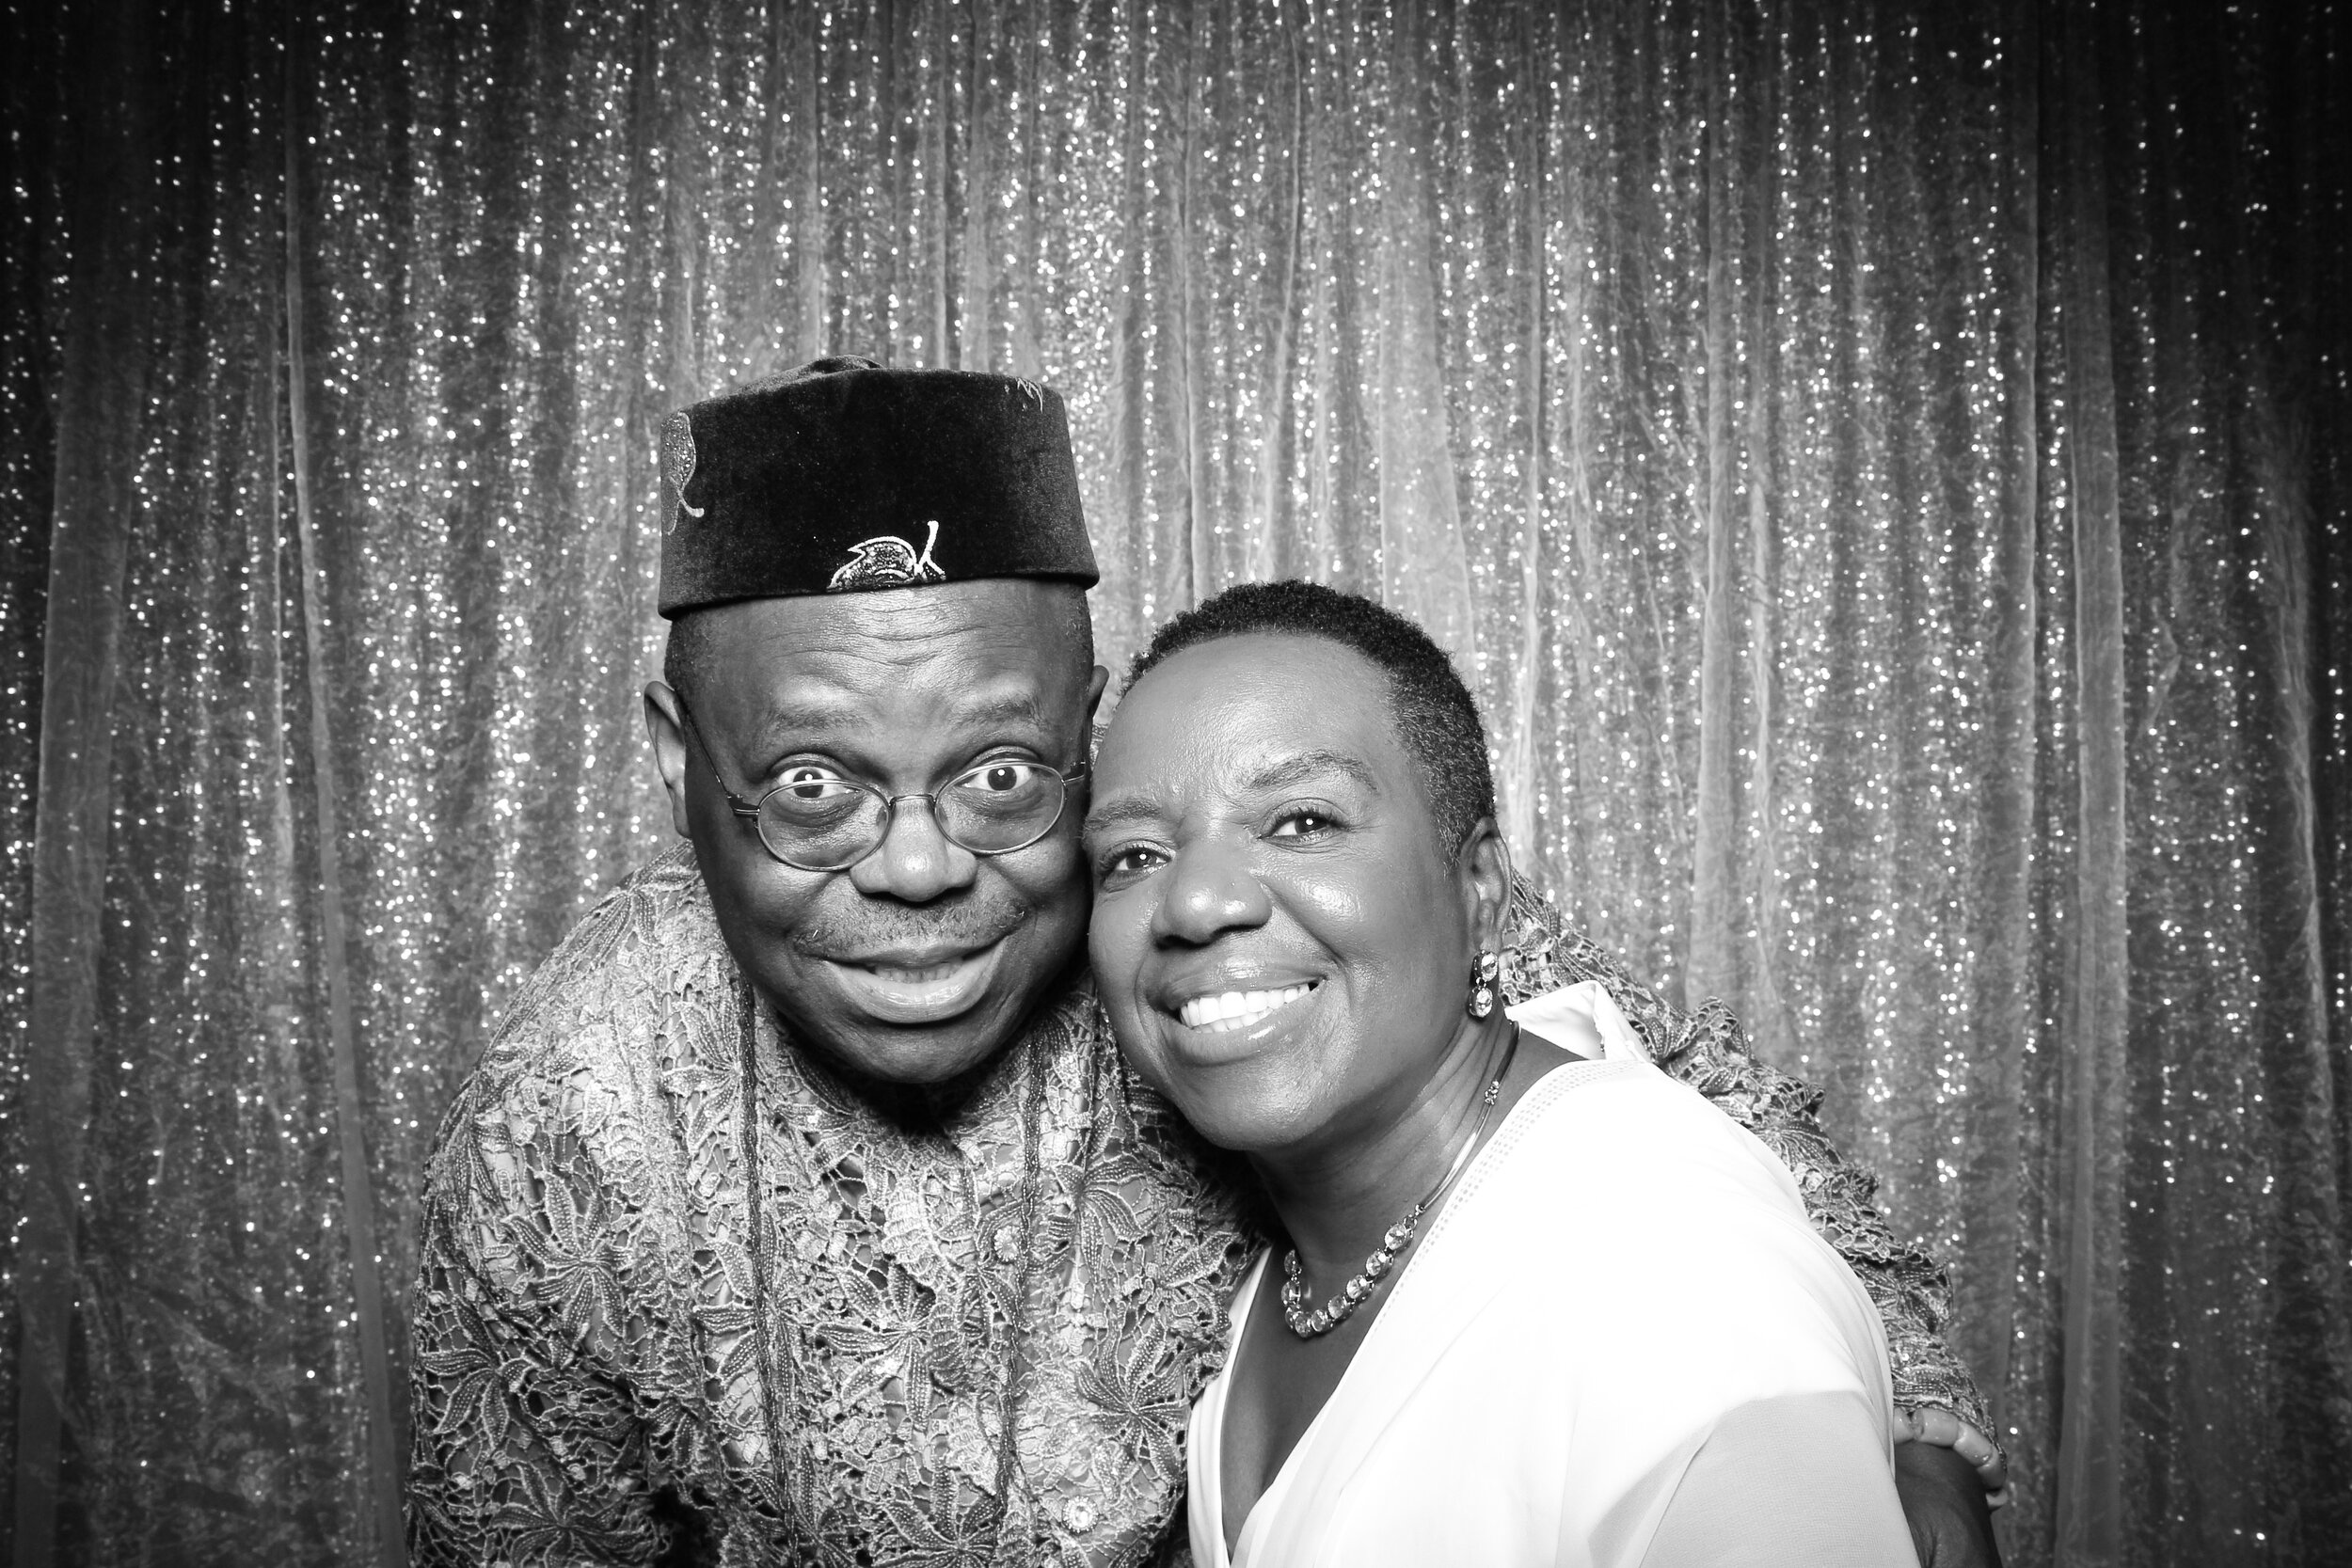 Ravisloe_Country_Club_Wedding_Photo_Booth_01.jpg